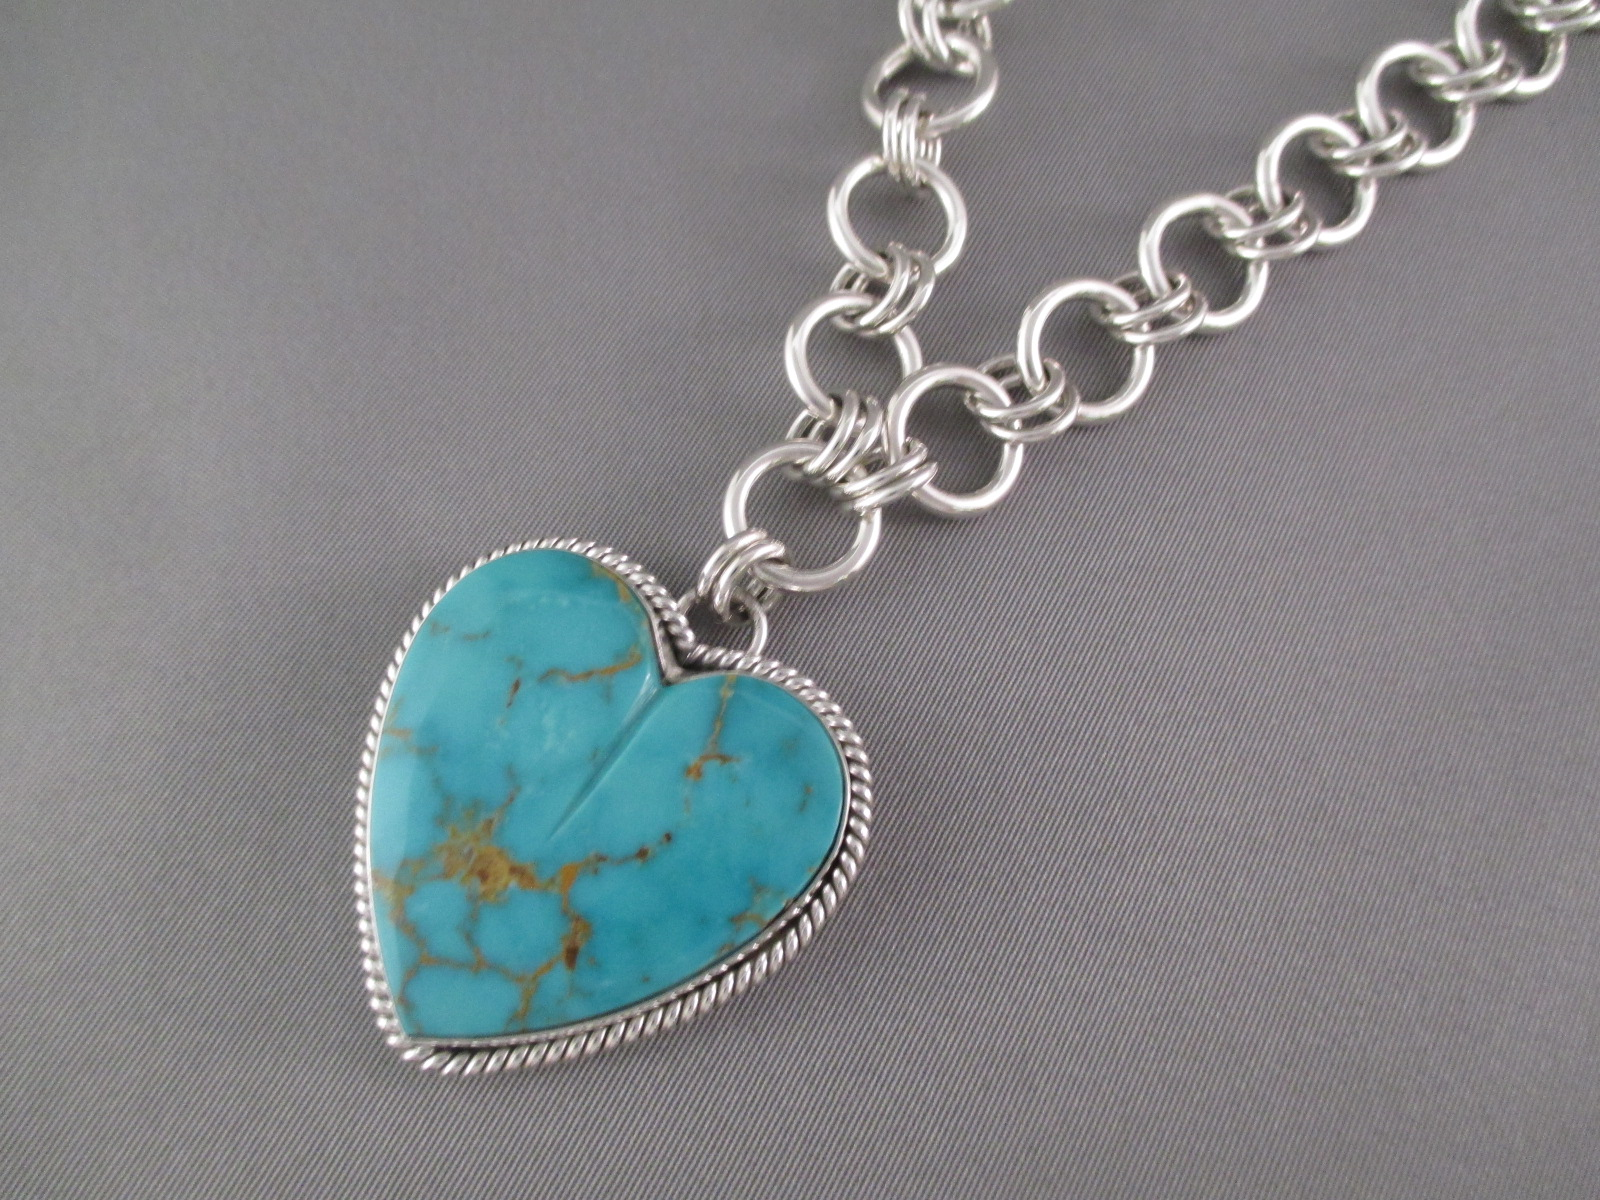 Heart Necklace Pendant Necklace With Turquoise Heart